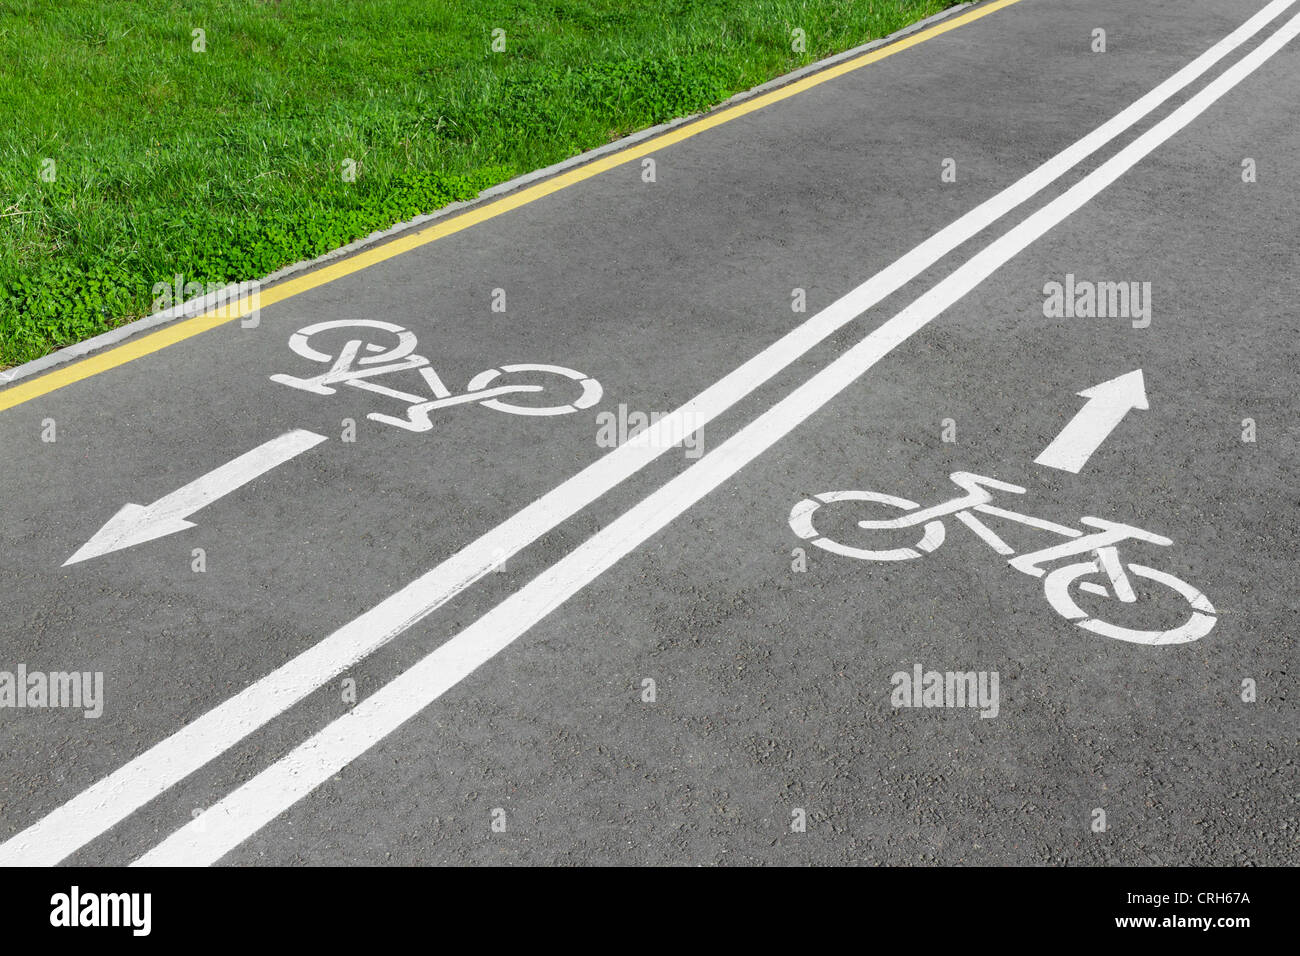 bike lane, road for bicycles - Stock Image